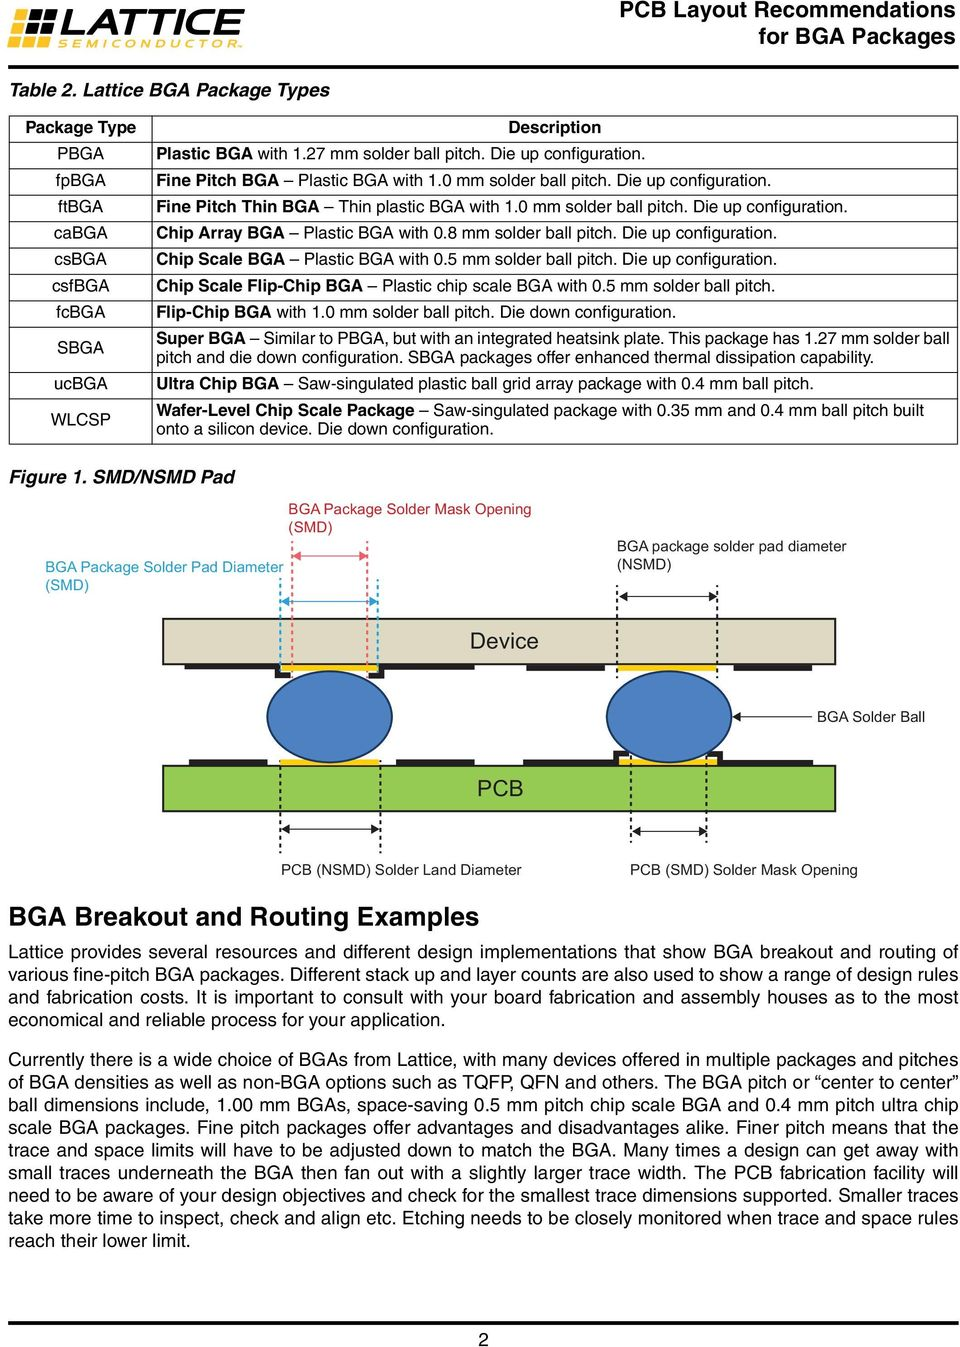 Pcb Layout Recommendations For Bga Packages Pdf Cadsoft Eagle Is An App Designing Printed Circuit Boards It Has 8 Mm Solder Ball Pitch Die Up Configuration Chip Scale Plastic With